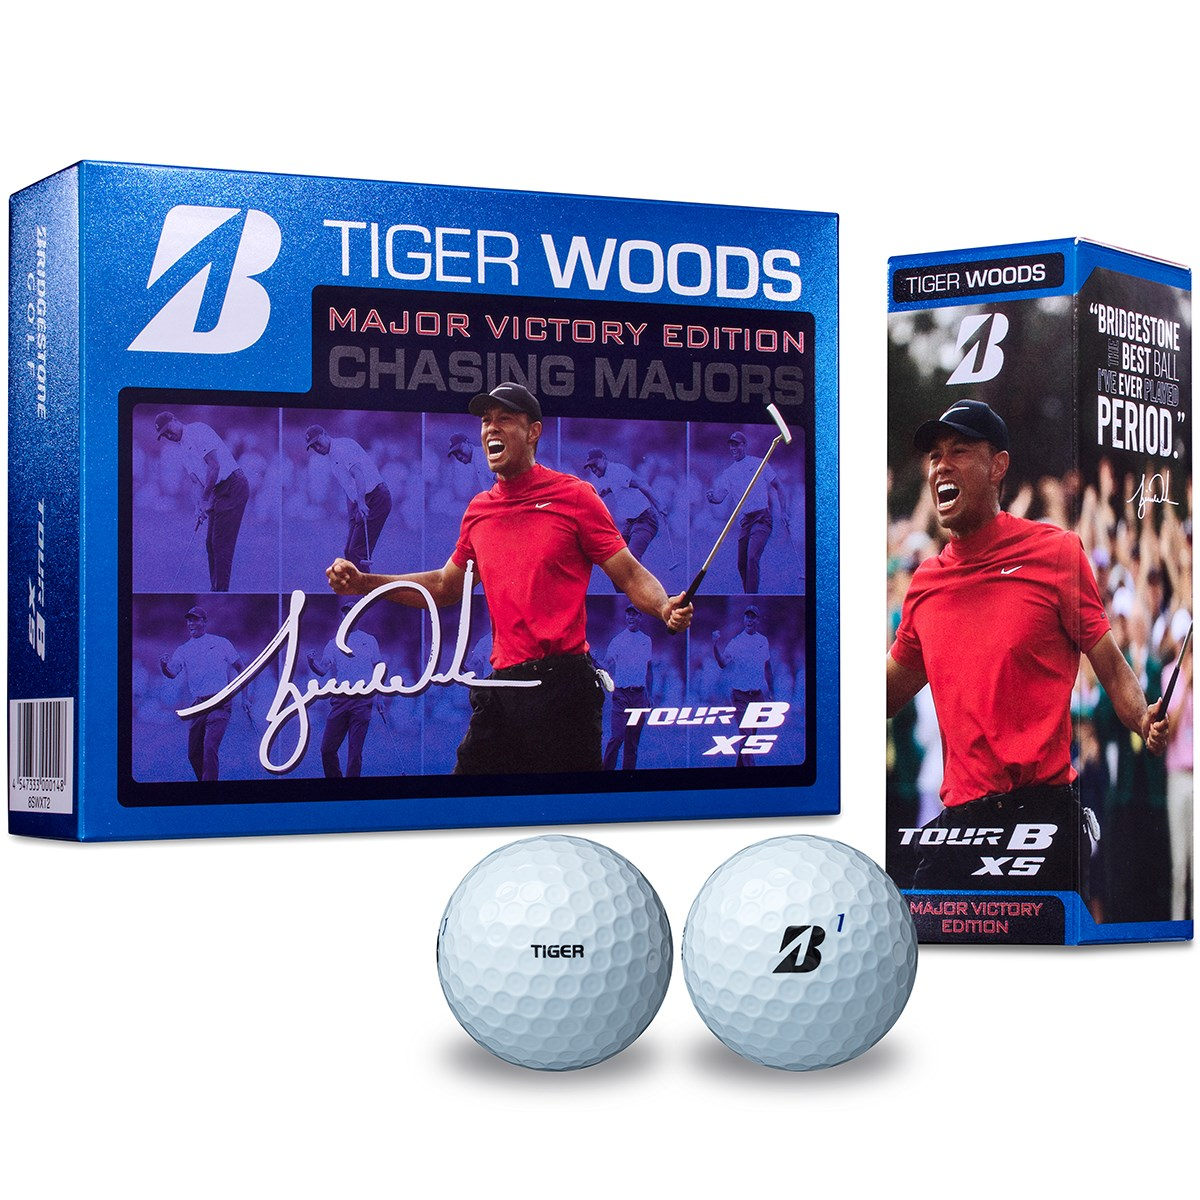 ブリヂストン(BRIDGESTONE GOLF) TOUR B XS TIGER WOODS MAJOR VICTORY EDITION ボール